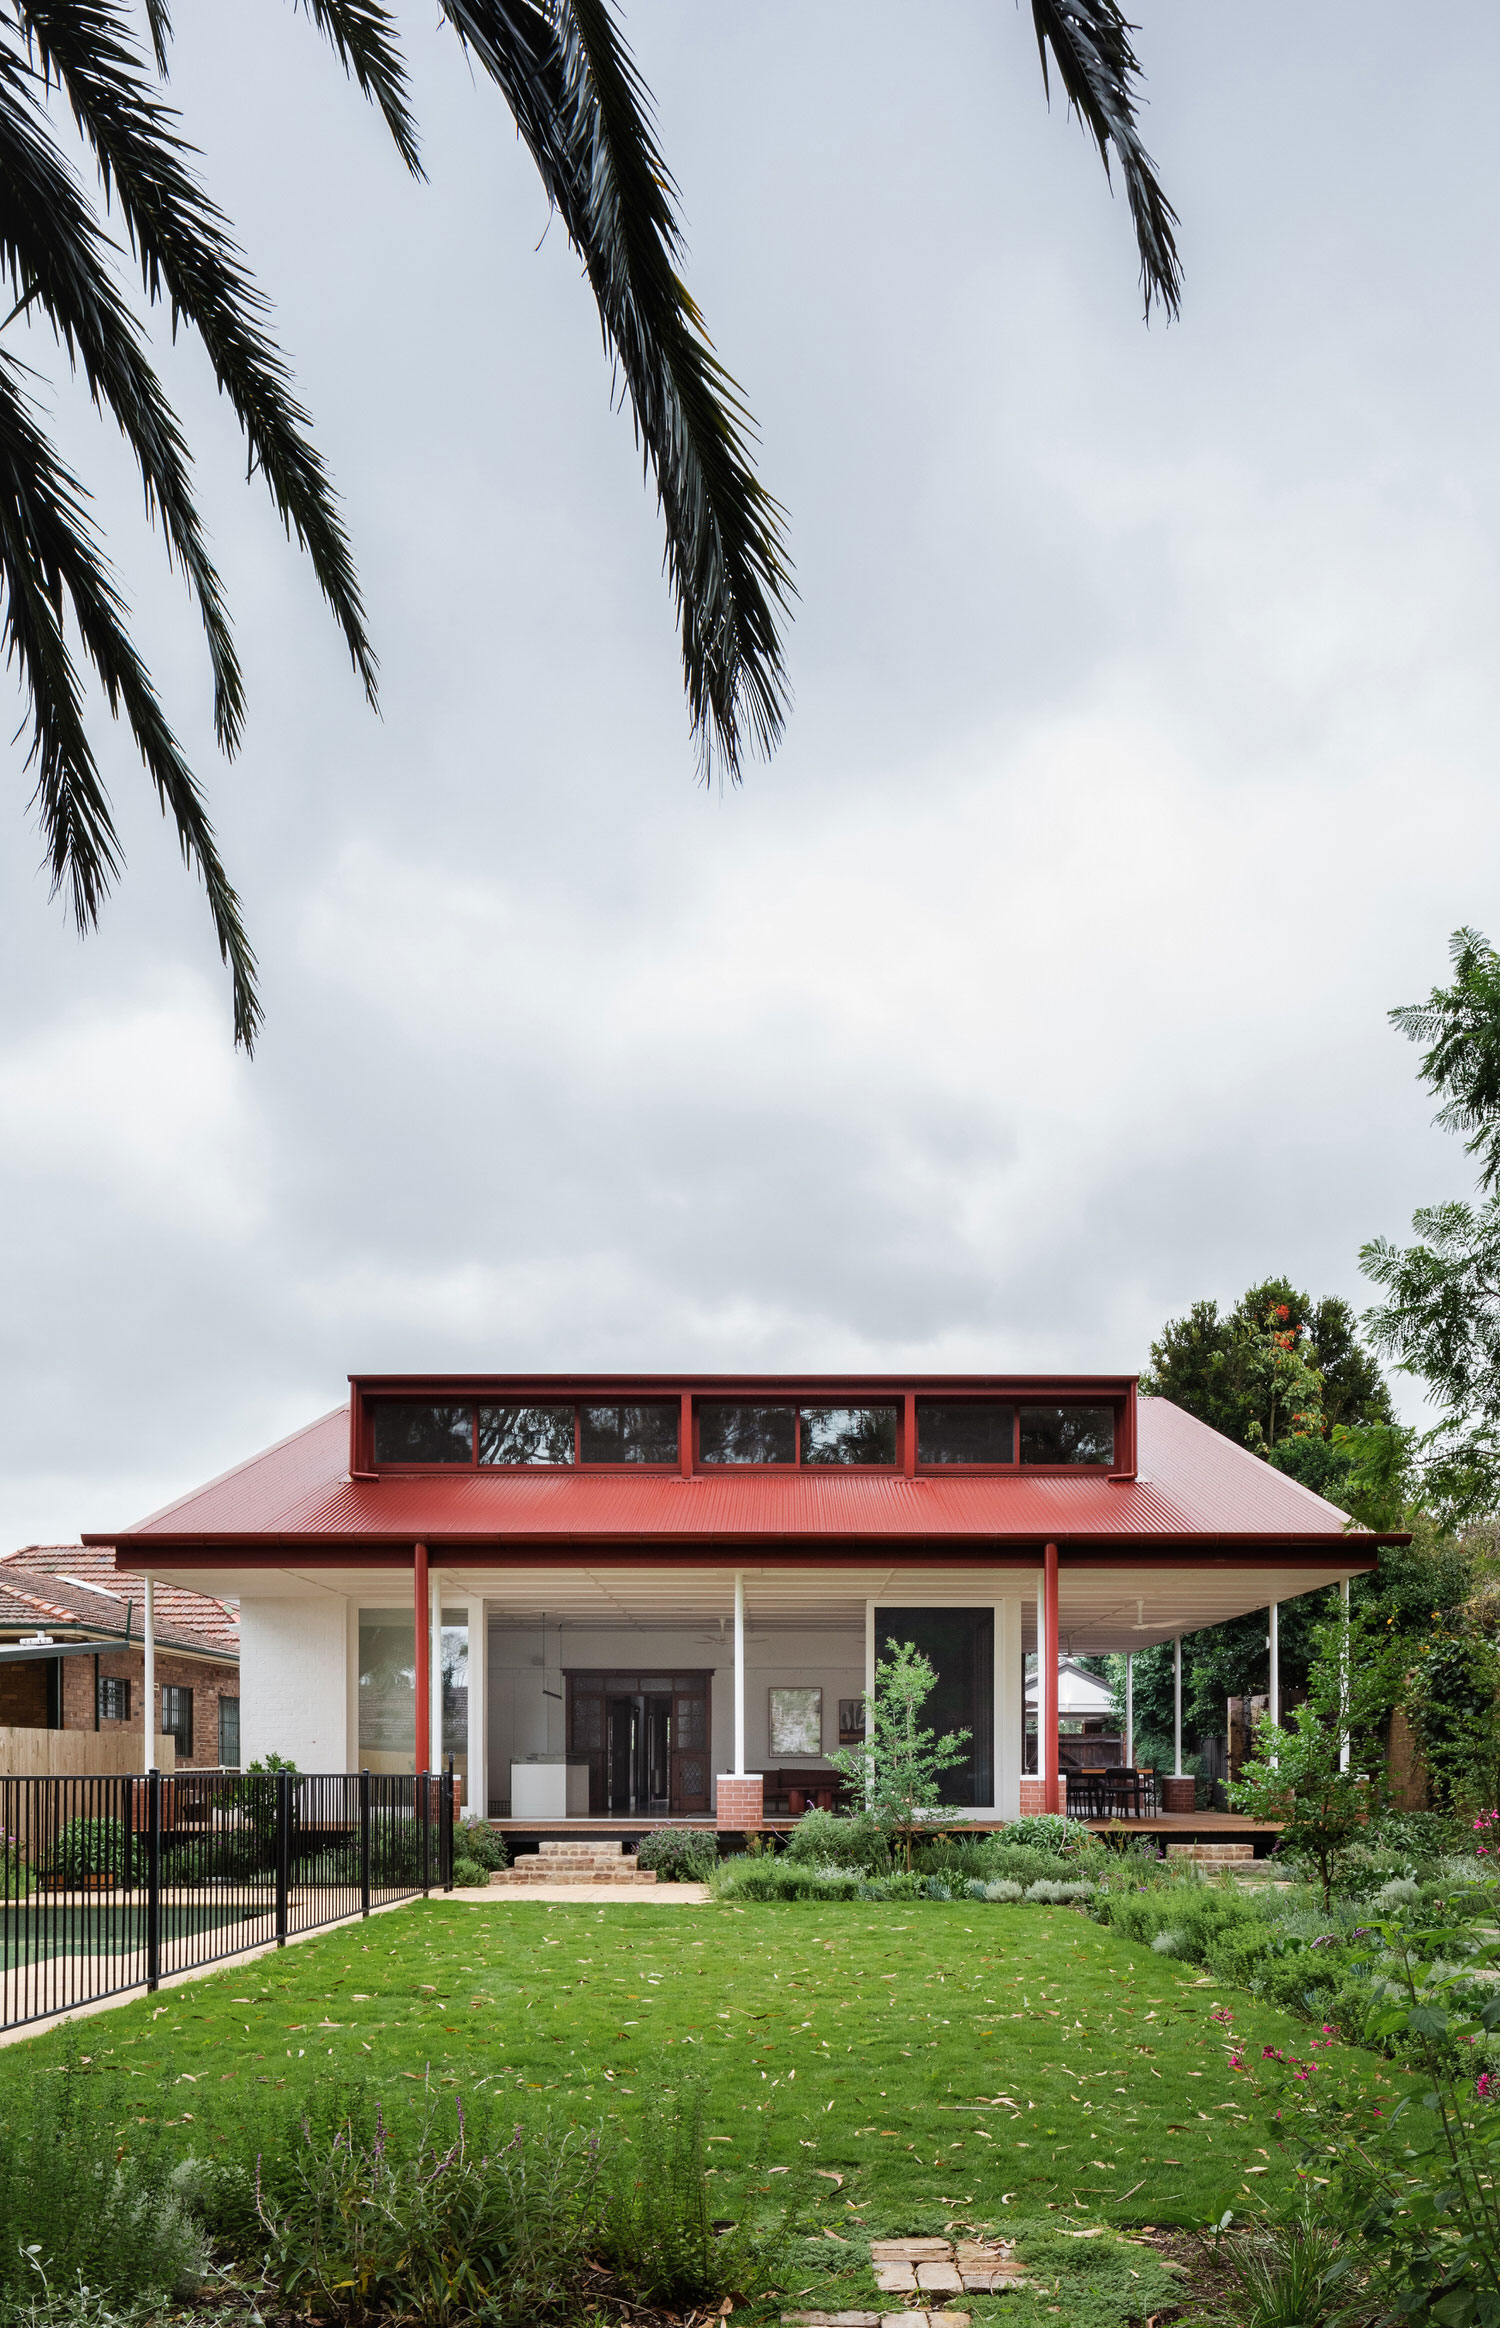 Californian Bungalow Reinterpreted: Dulwich Hill House by Tribe Studio Architects.